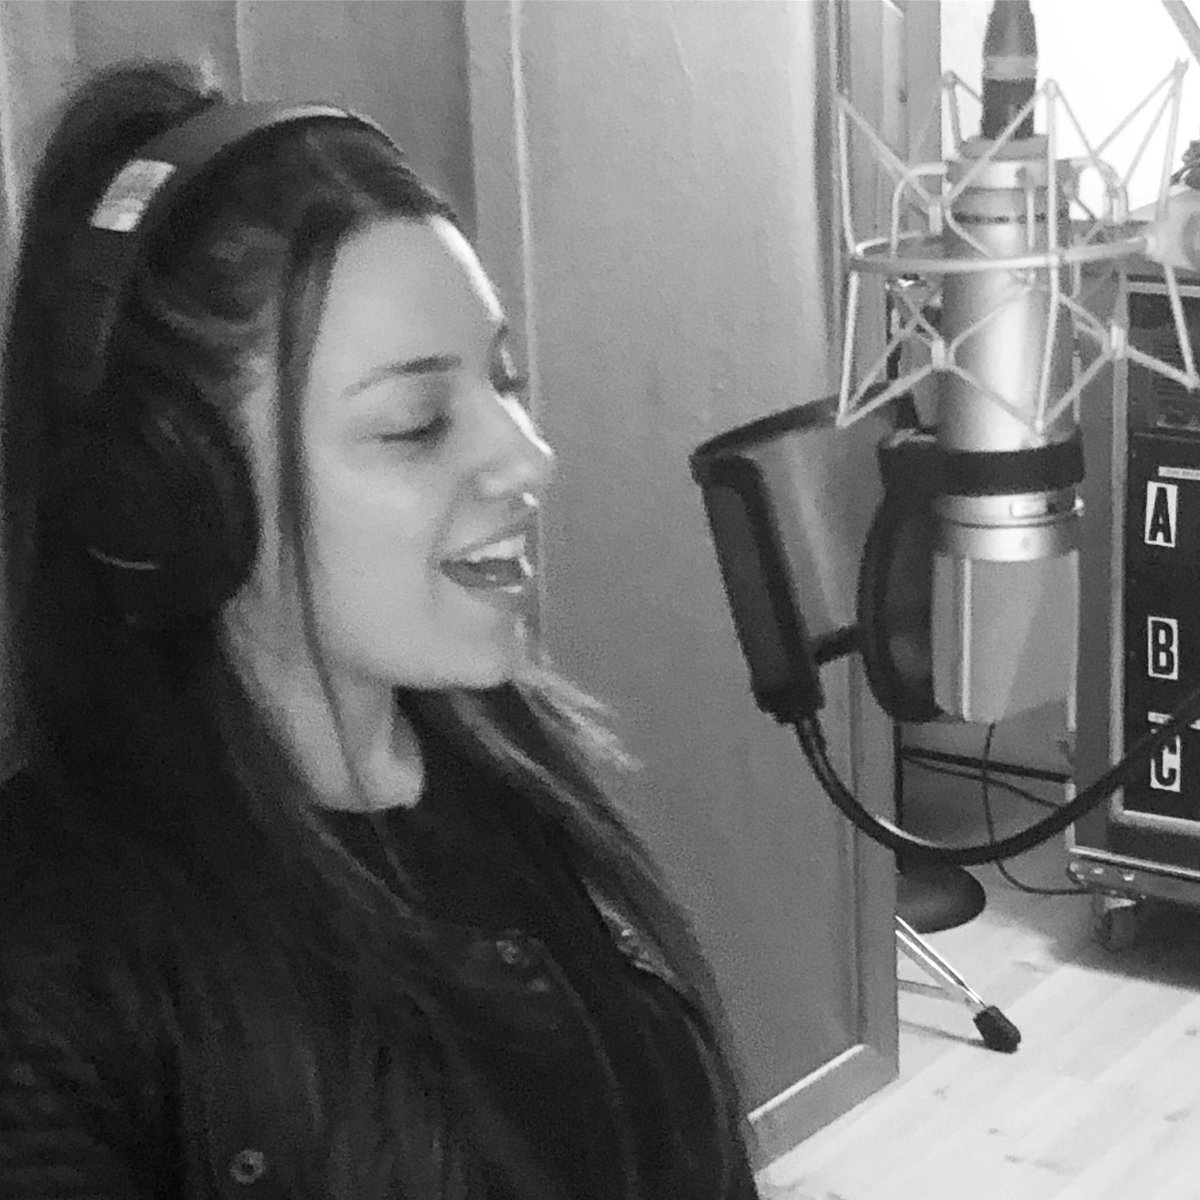 test Twitter Media - Vocal Session With The Awesome @melissacartermusic Check Her Out & Catch A Show... Great Singer, Great Songs! Happy To Play Drums On Her Record. #singersongwriter #recordingartist #recordingstudio @dwdrums @paistecymbals @vicfirth #melissagottliebmusic https://t.co/xqe0VAyEUr